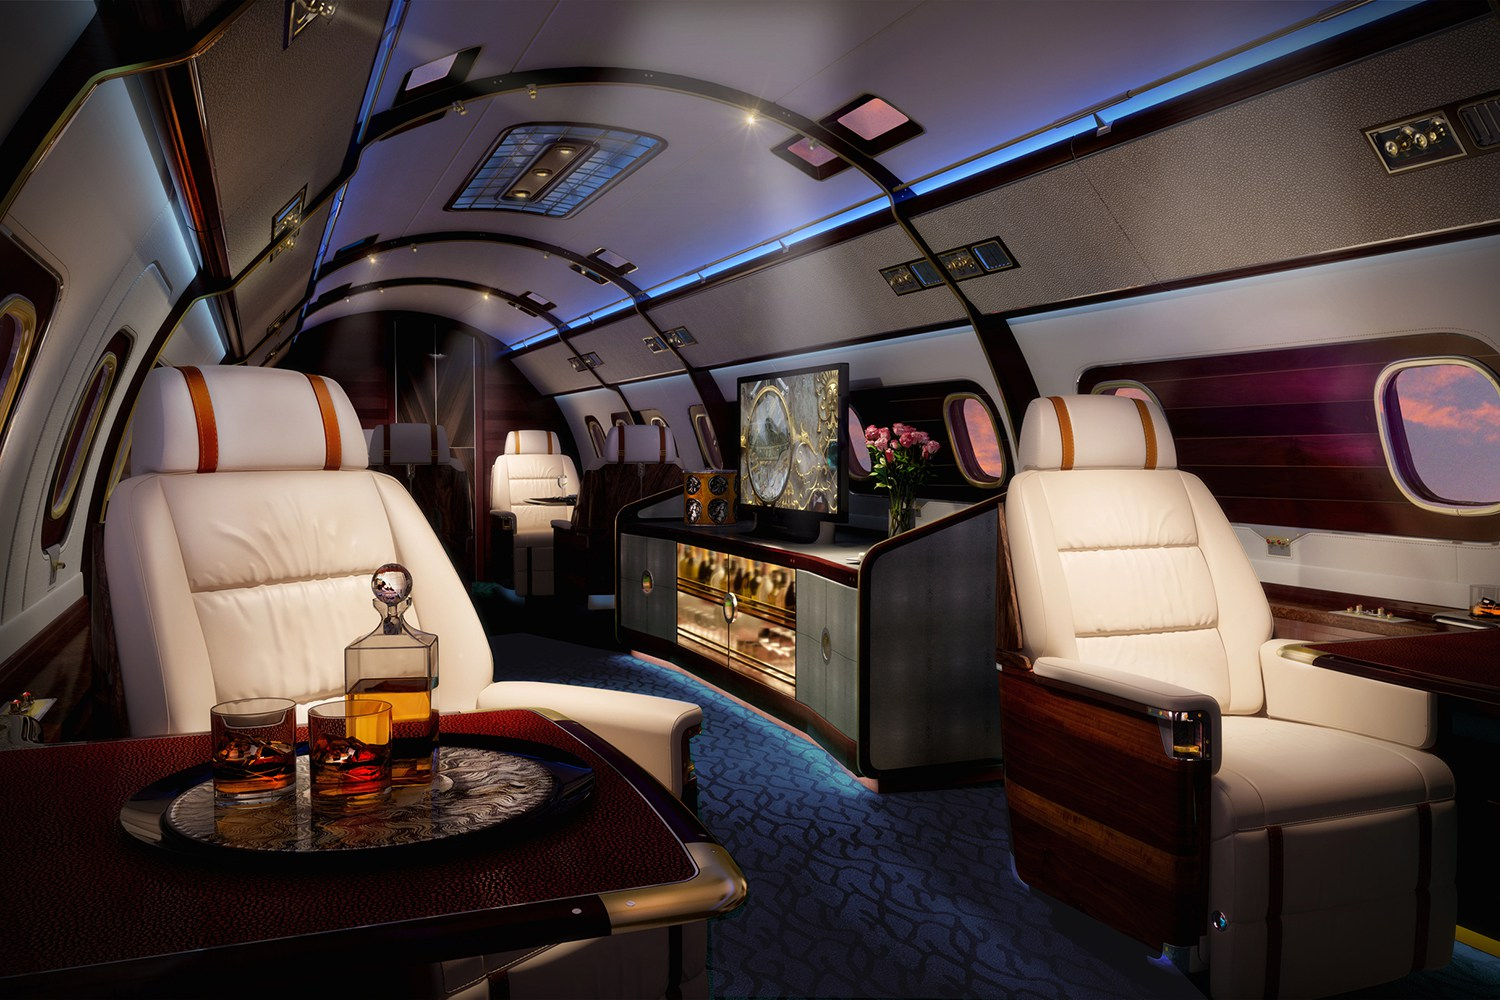 Private Jets — Baroque Lifestyle - Travel, Luxury Hotels, Dining, Trends